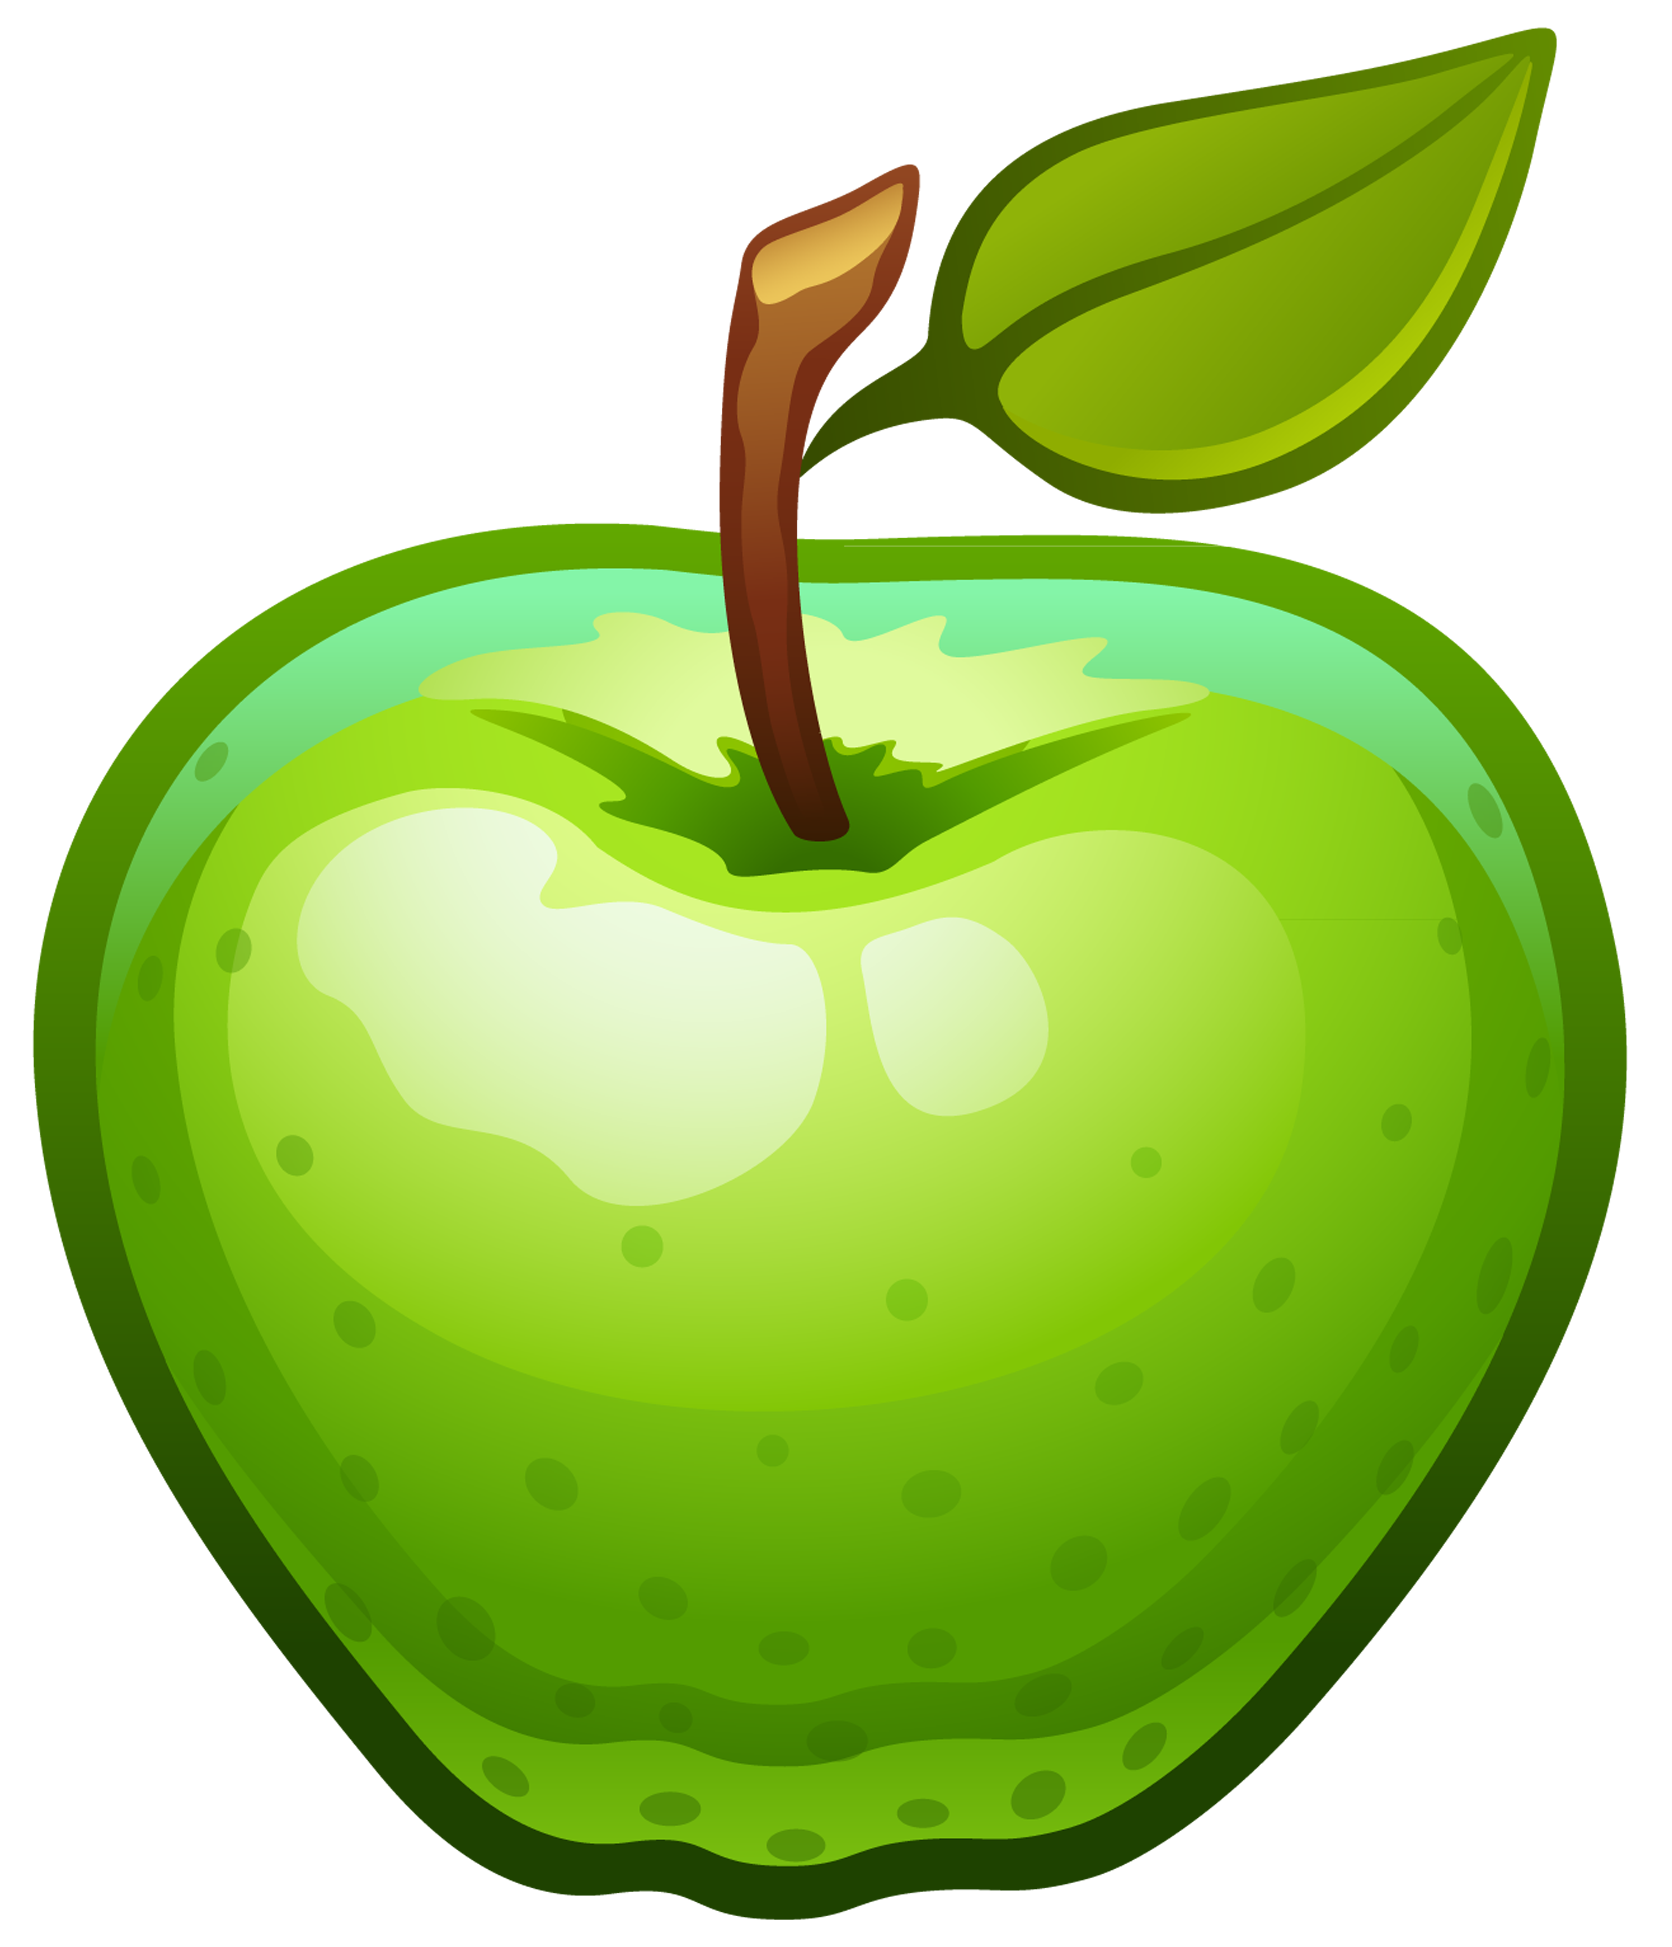 Free green apple clipart banner royalty free Beautiful Of Blue Apple Clipart | Letters Format banner royalty free